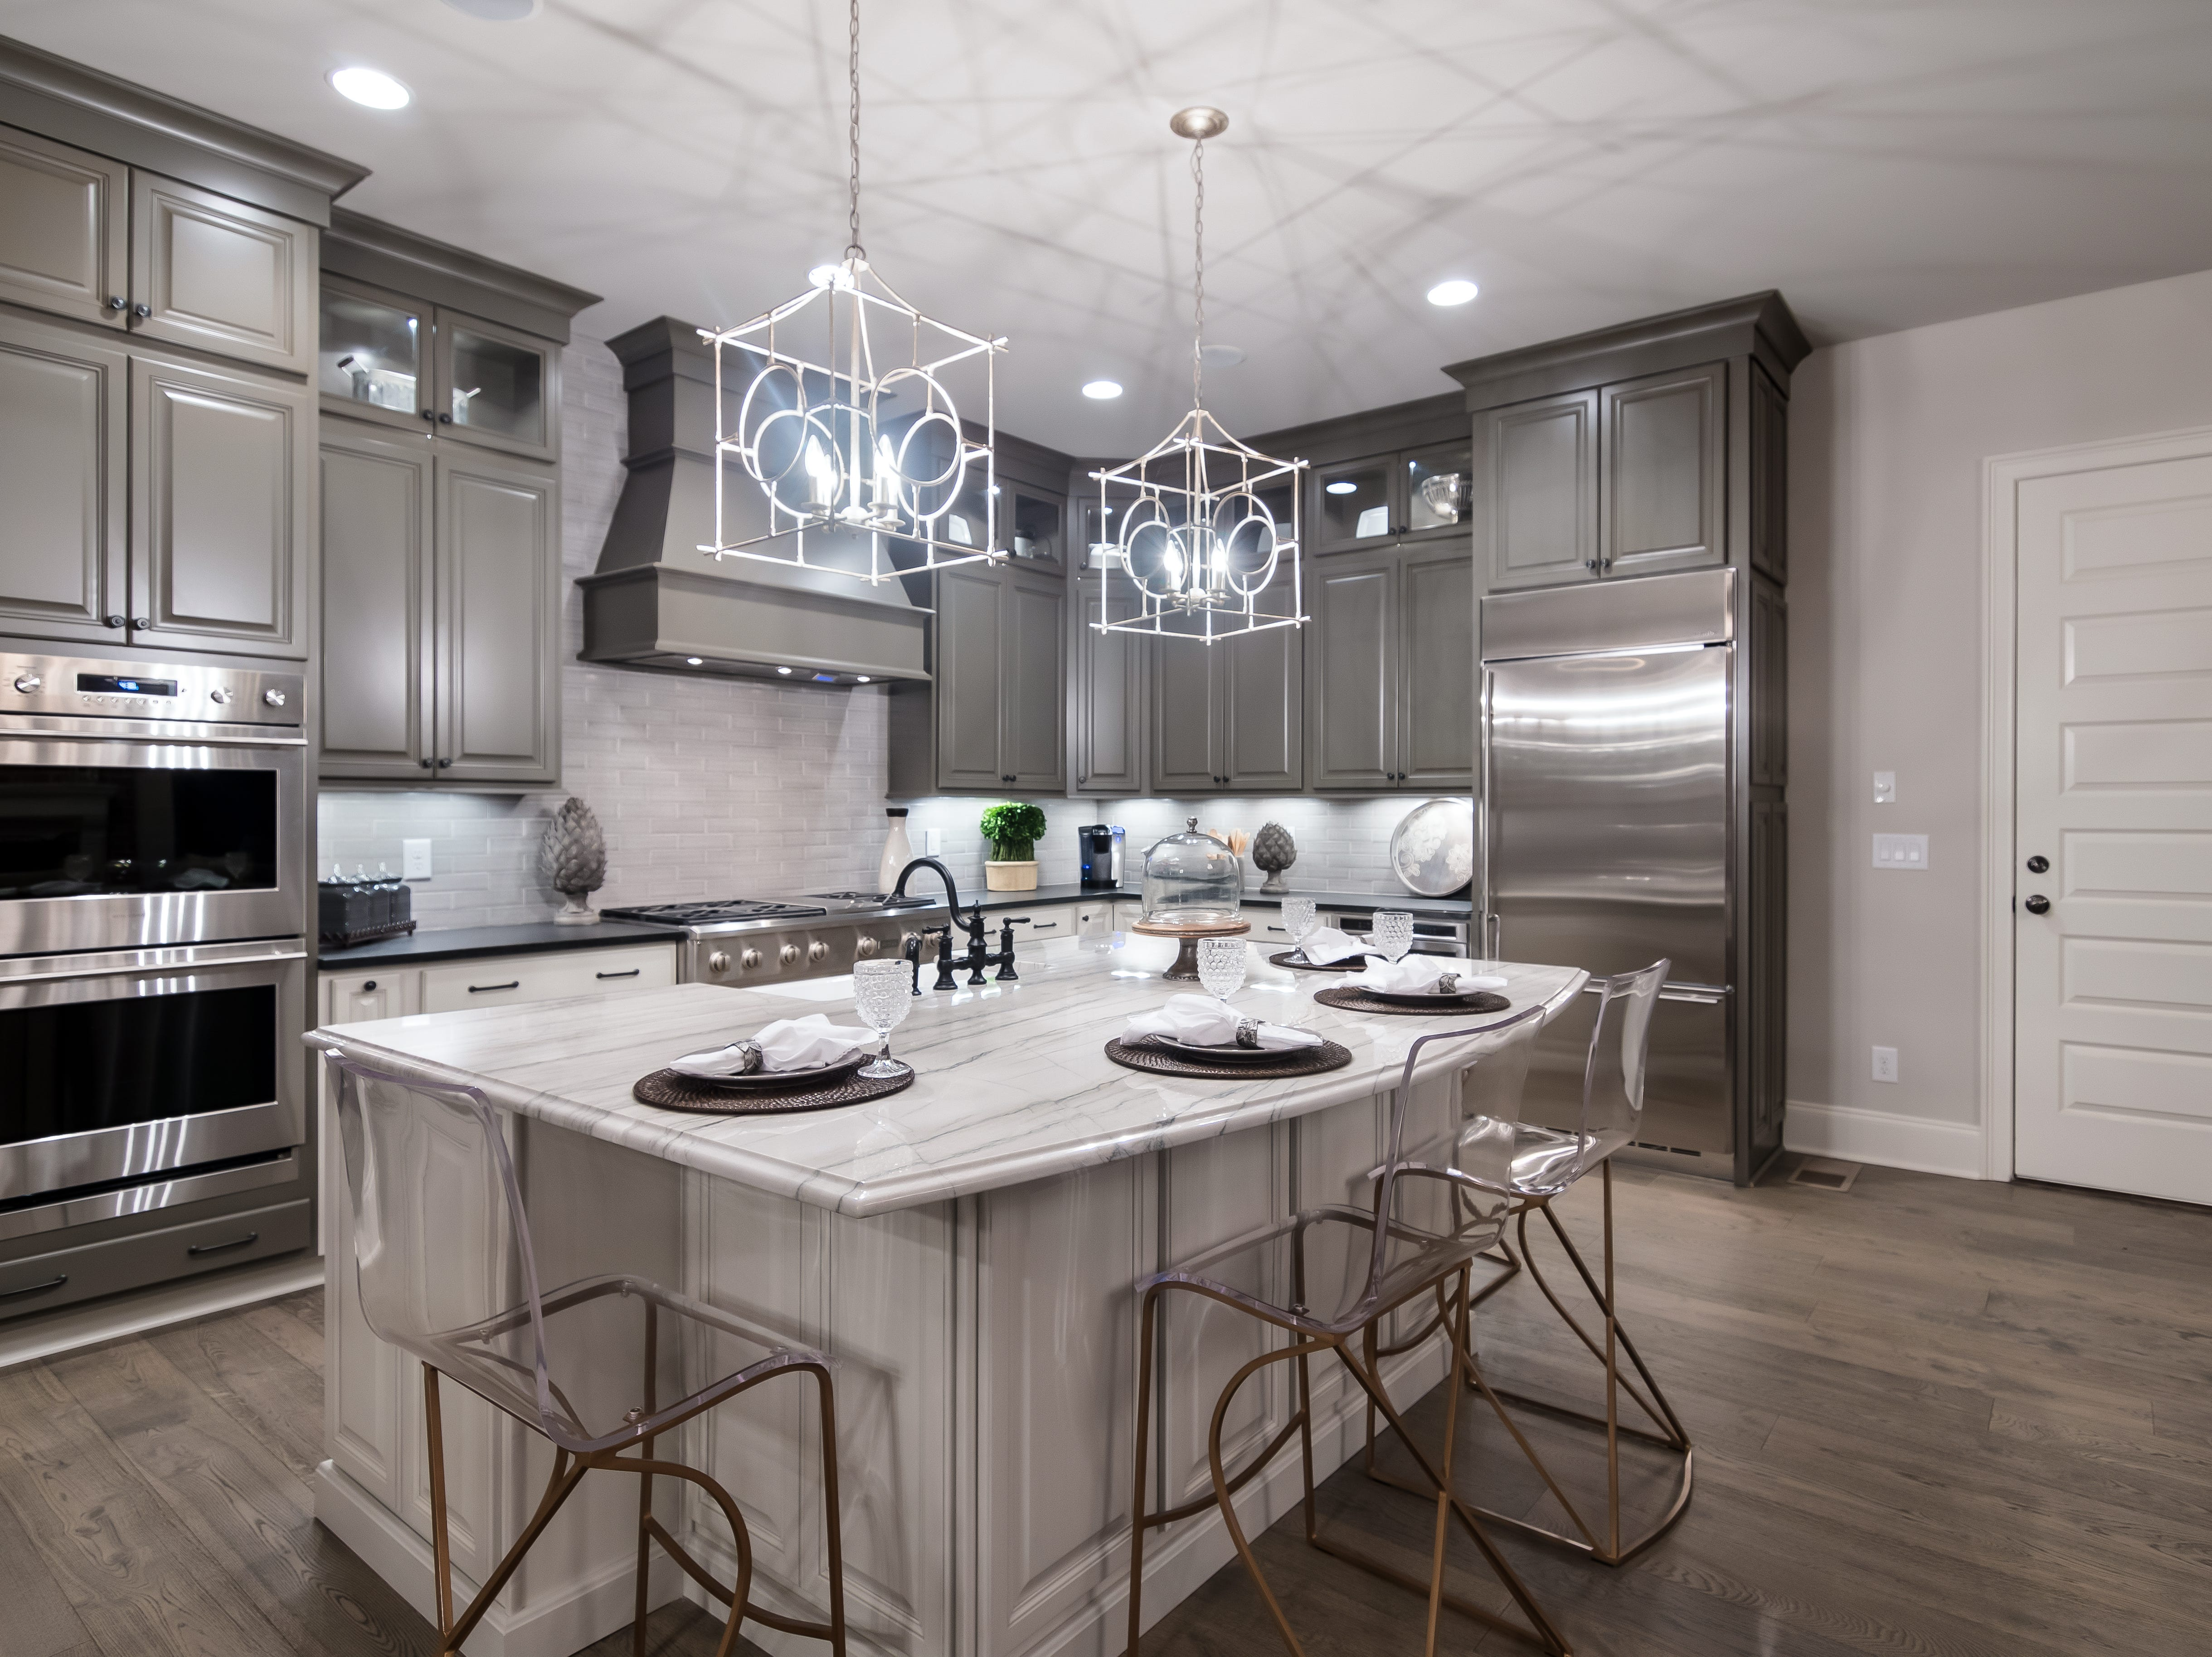 The kitchen in the Lookaway Farms model home also showcases some of the upgrades that come with the home such as painted cabinets and higher-end finishes such as the pendant lights.